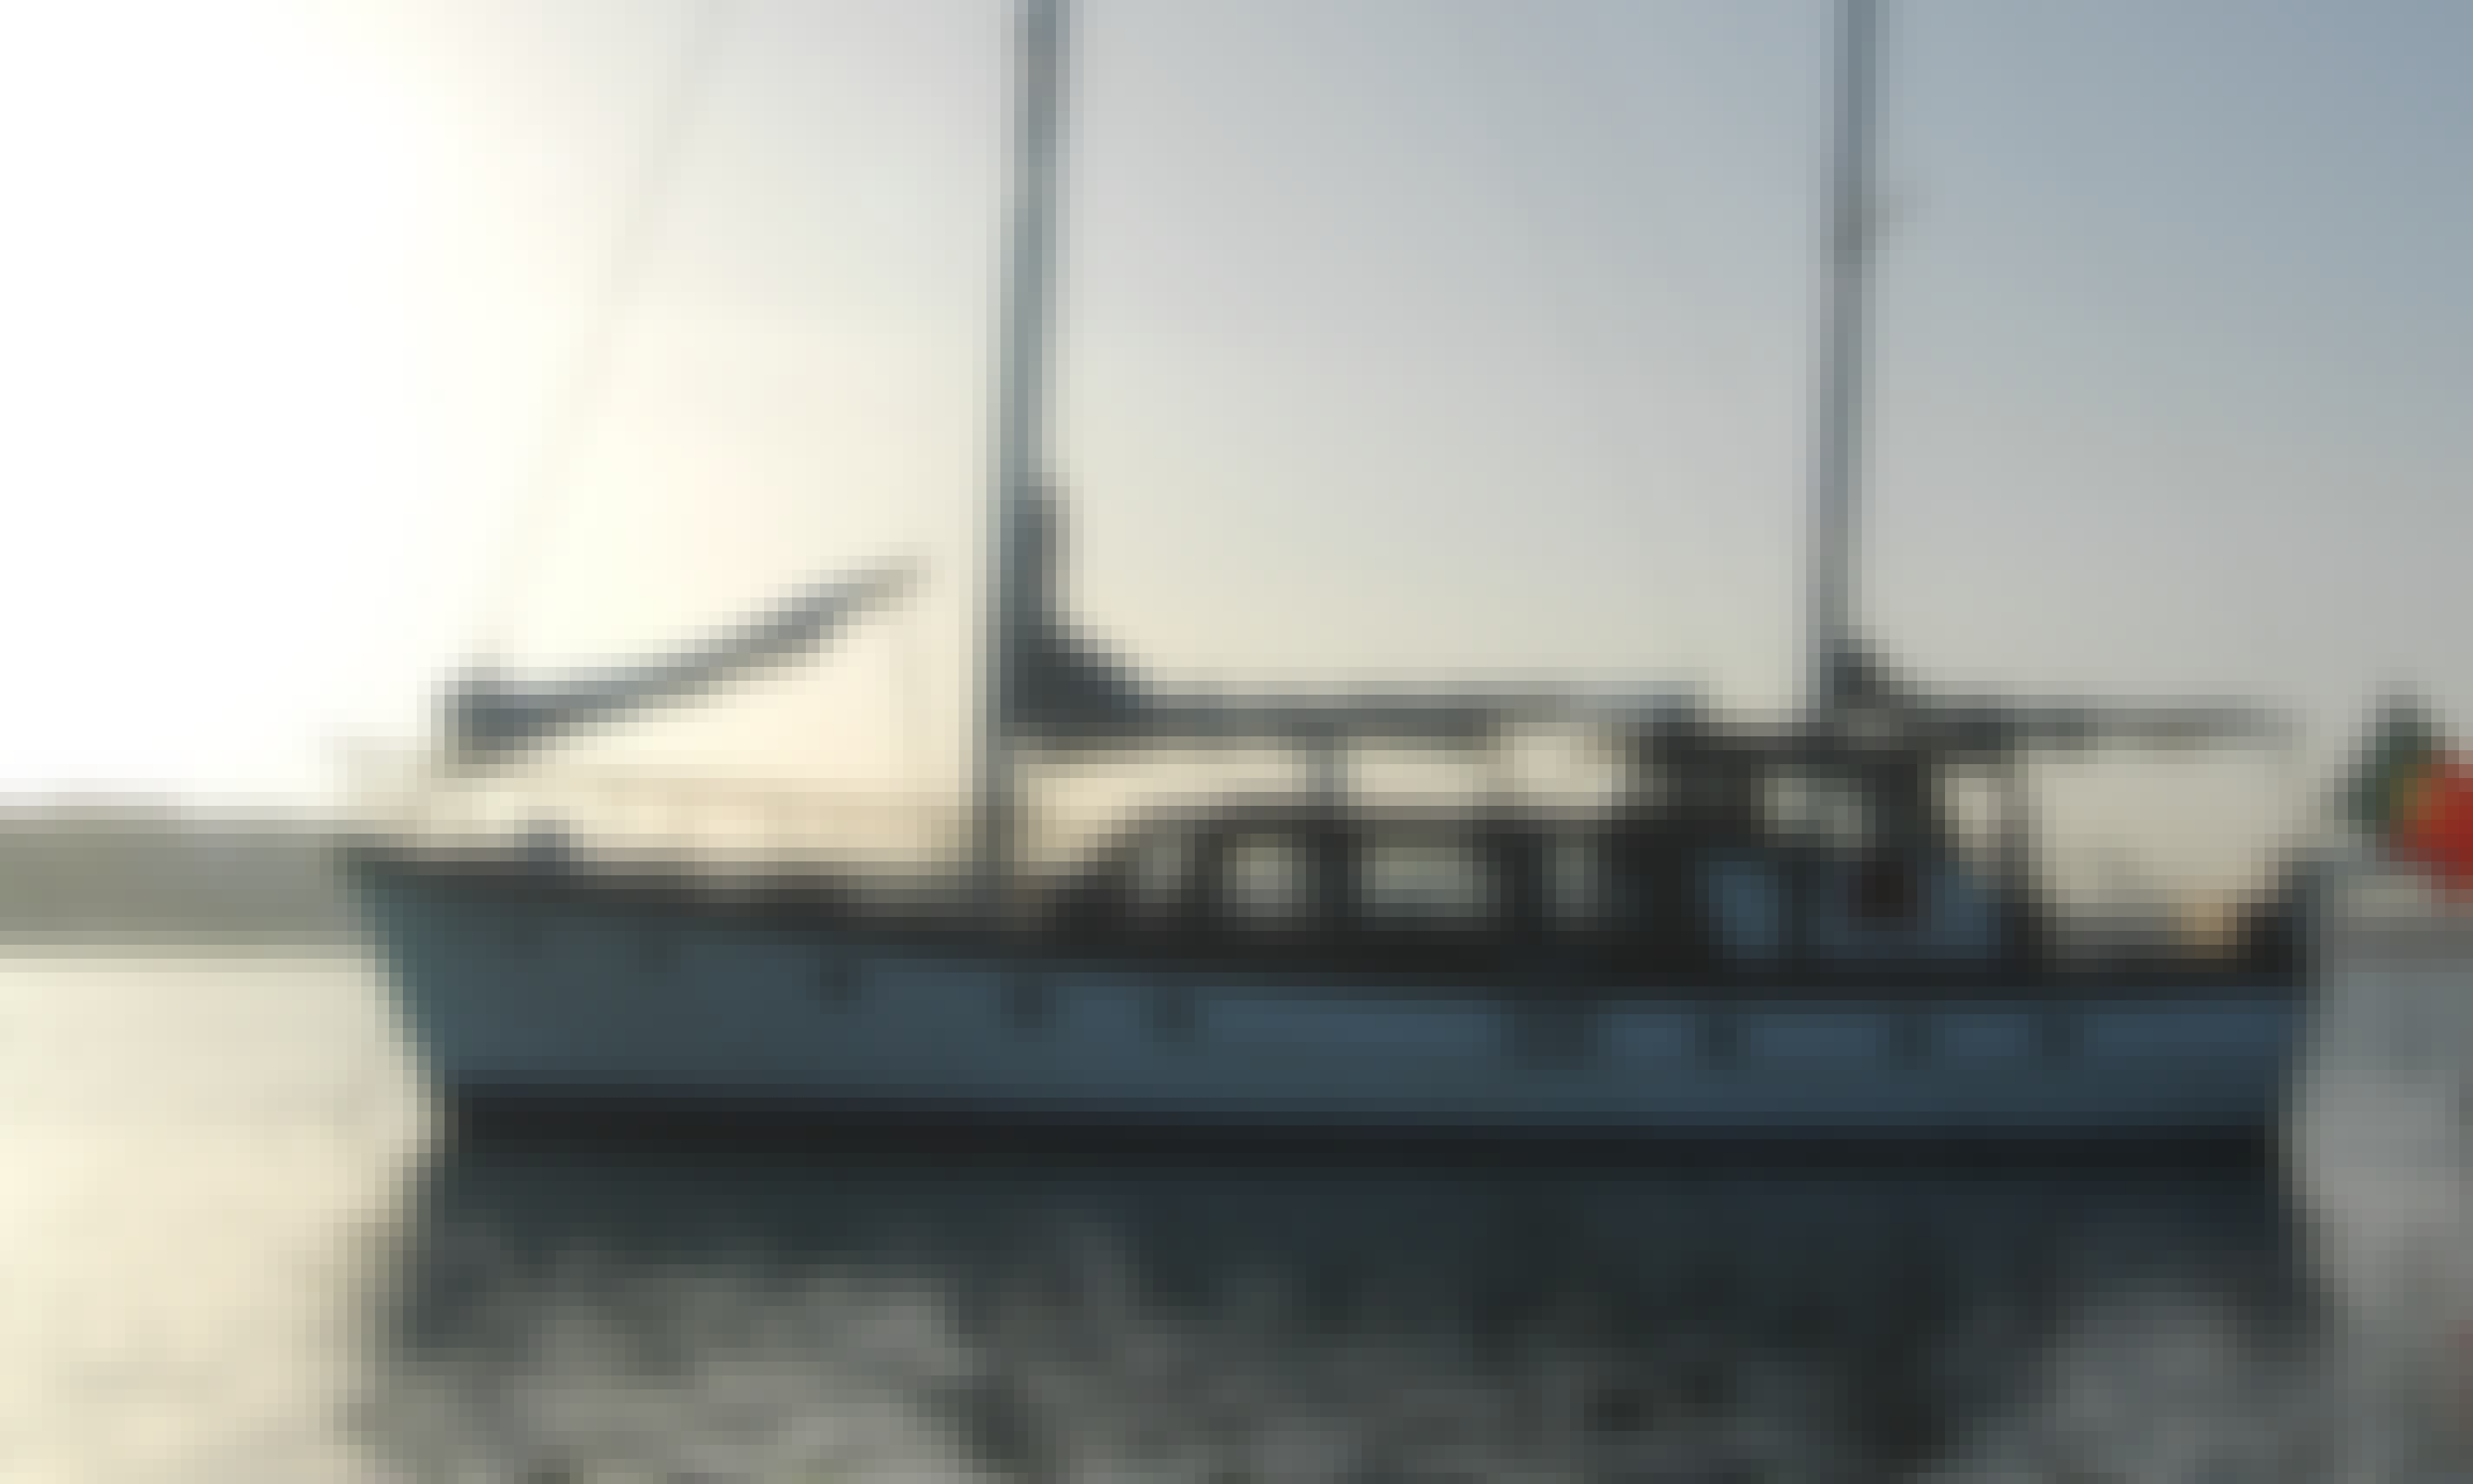 Historical Boat Tour Onboard 55' G. L. Watson & Co. Wooden Yacht For 18 People!